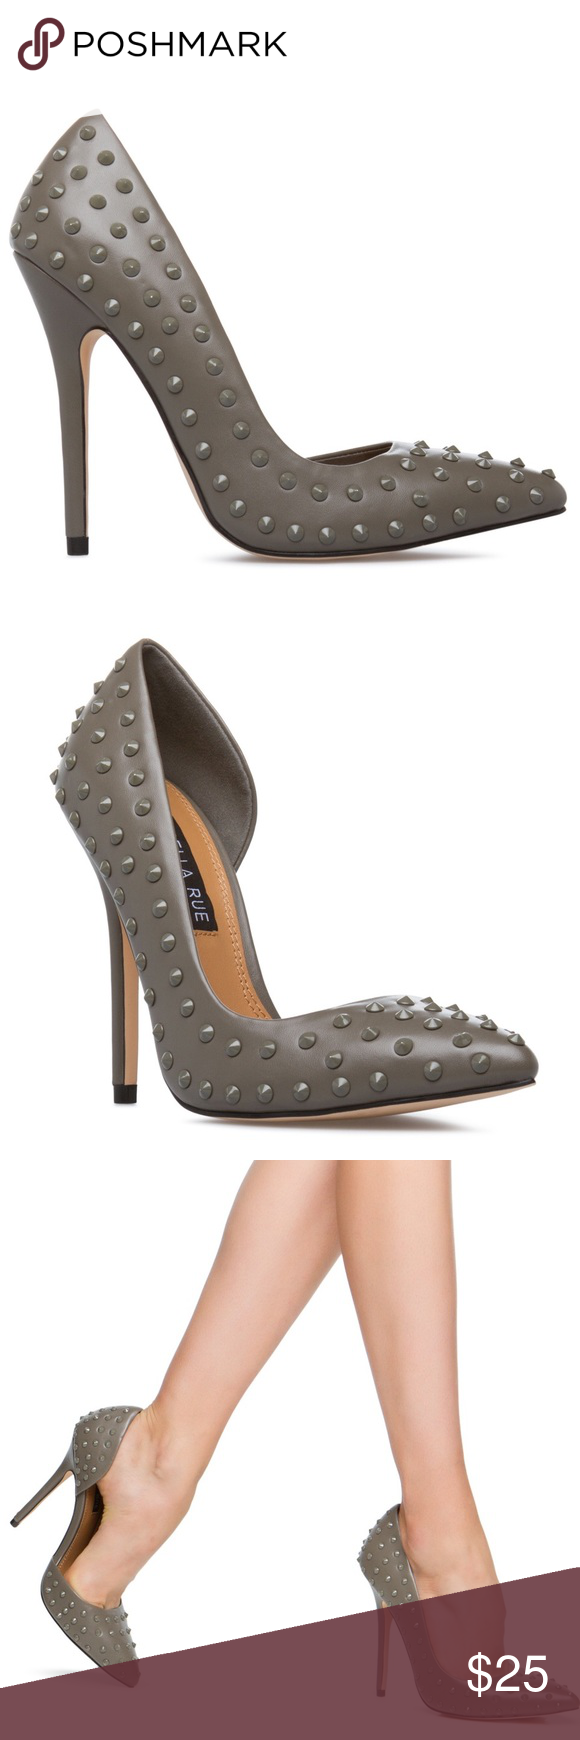 Spiked Heels Izabella Rue, a pointed pump with spiked accent beads. I have these in three different colors. Couldn't work this one into my wardrobe. Brand New. Size says 6, but I'm a True 6.5. This style runs 1/2 size too big.... Reason why I got them in a 6. Izabella Rue Shoes Heels